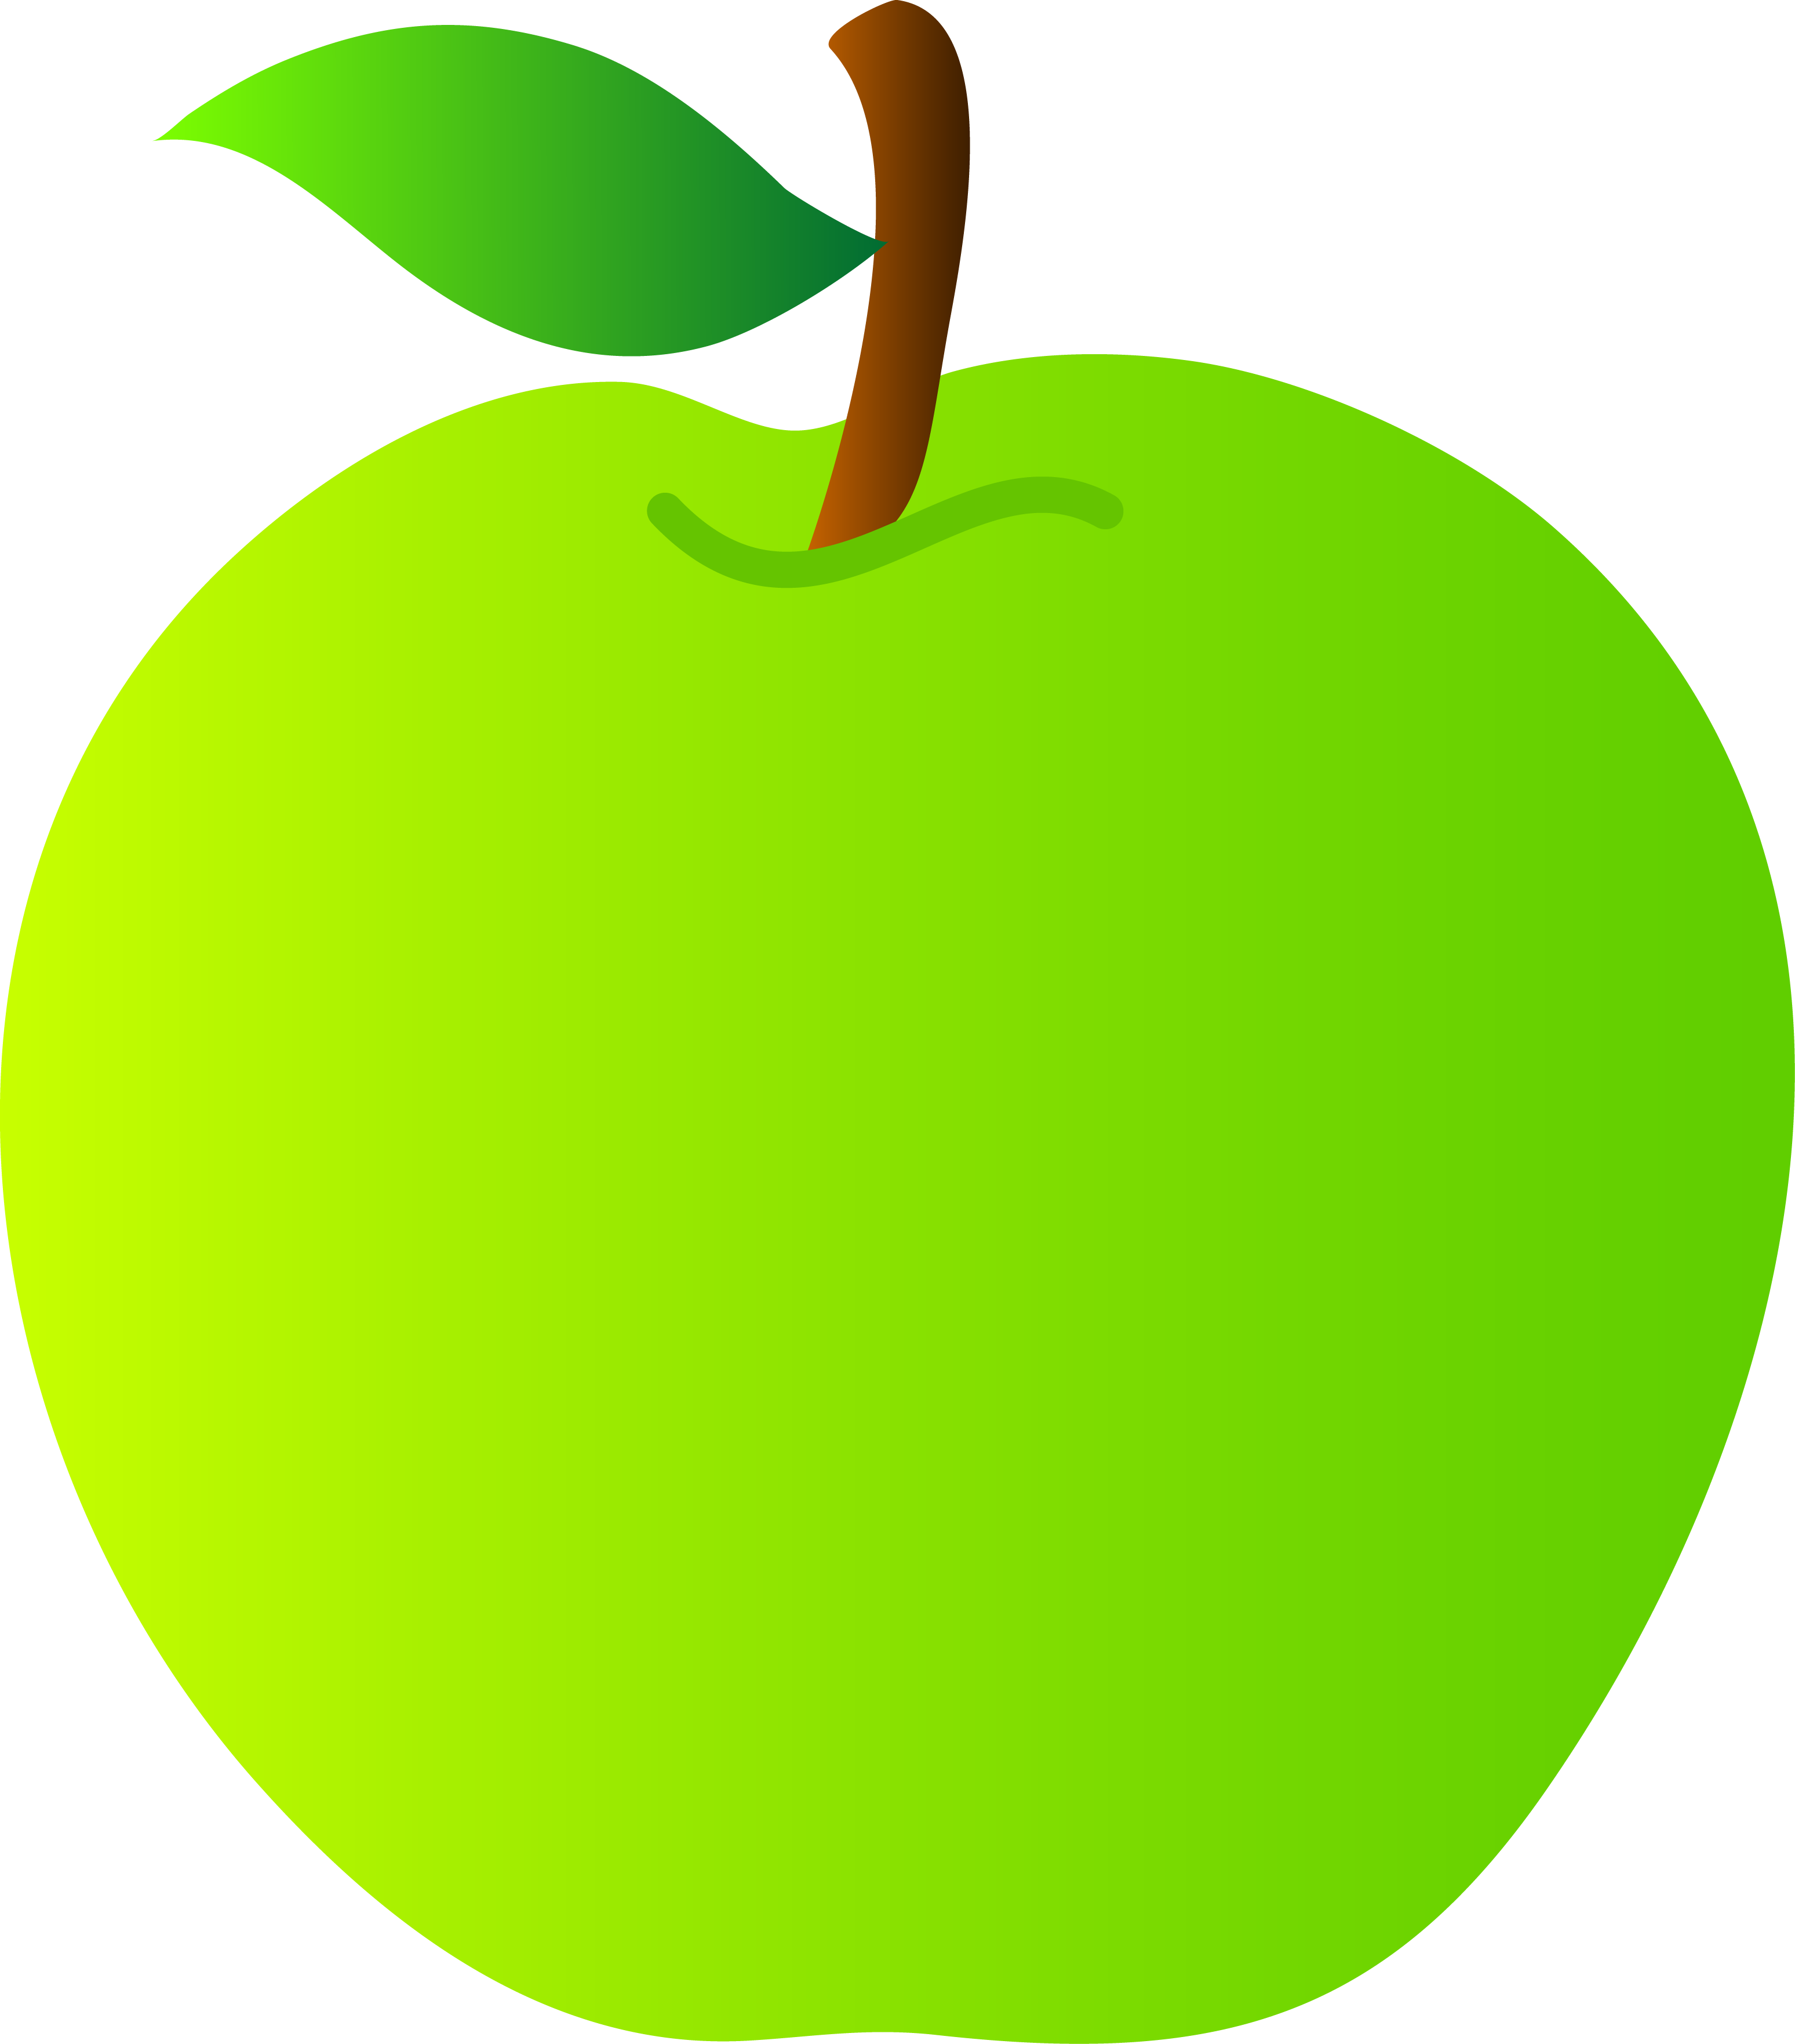 Banana and apple together clipart image free Green Apple Drawing at GetDrawings.com | Free for personal use Green ... image free